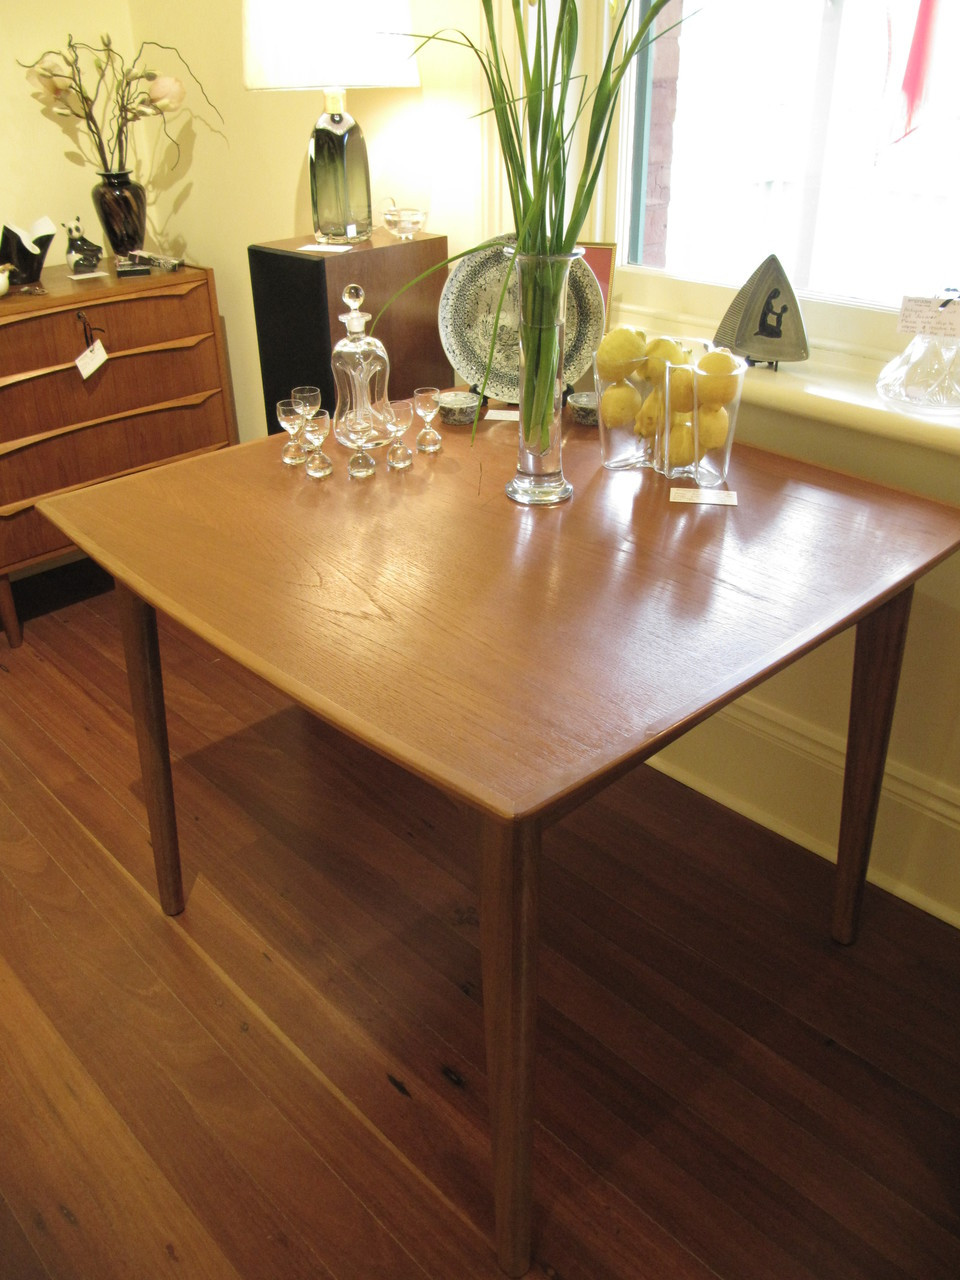 Vintage Noblett Teak Extension Dining Table In Stock : IMG419926052144117657012801280 from emprades.com.au size 960 x 1280 jpeg 249kB